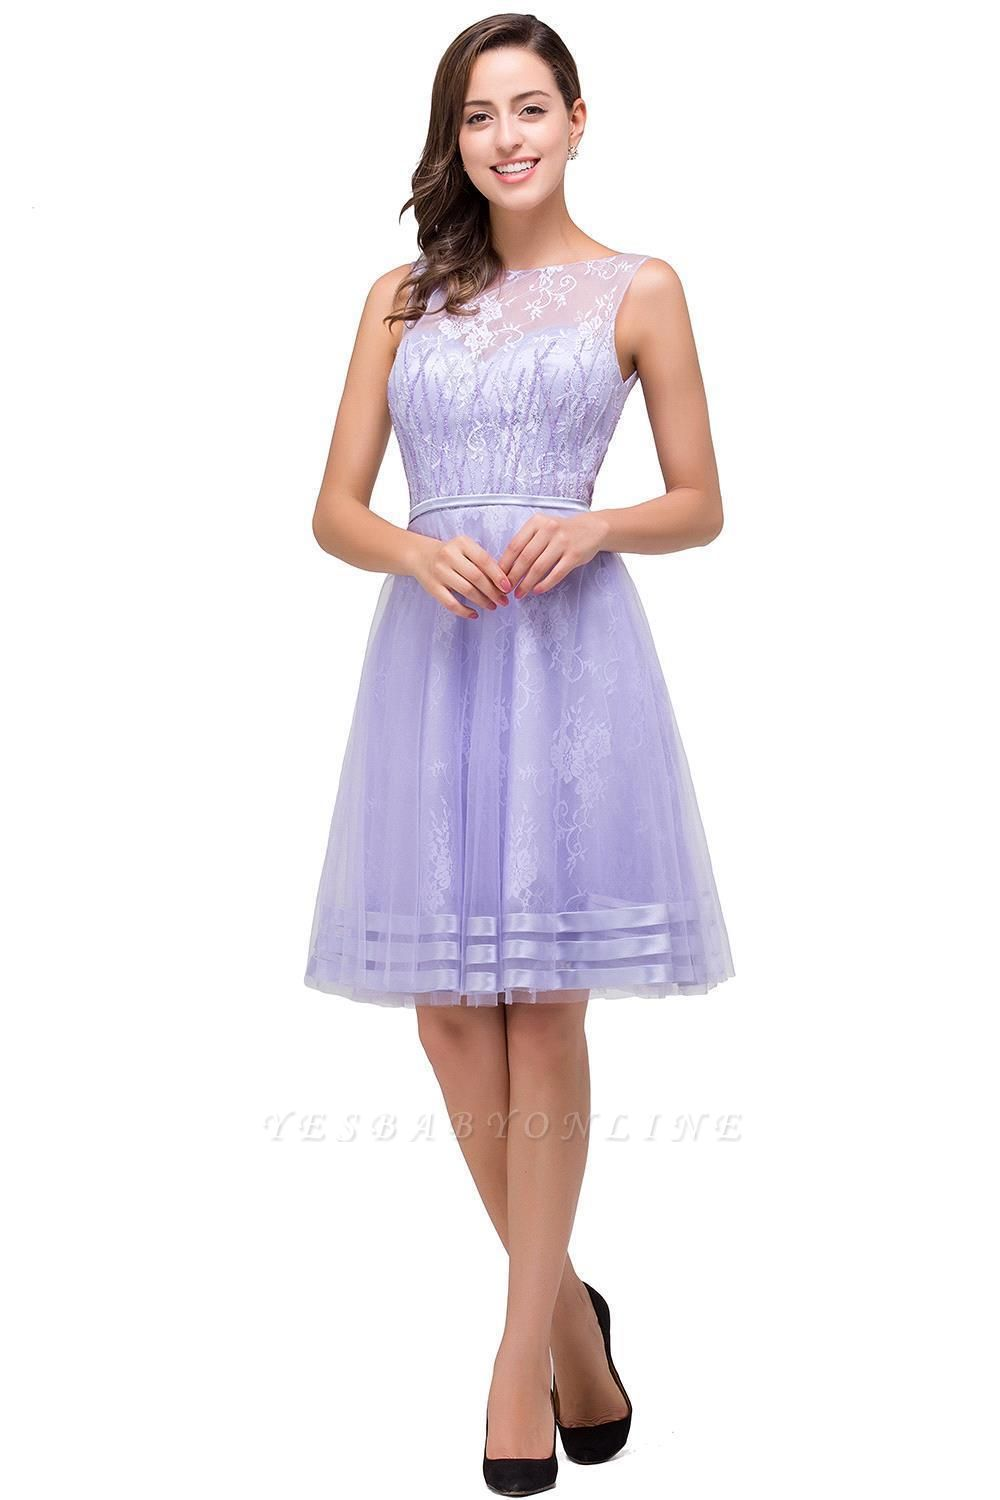 2019 Lavender Short Lace A-Line Sleeveless Mini Homecoming Dress